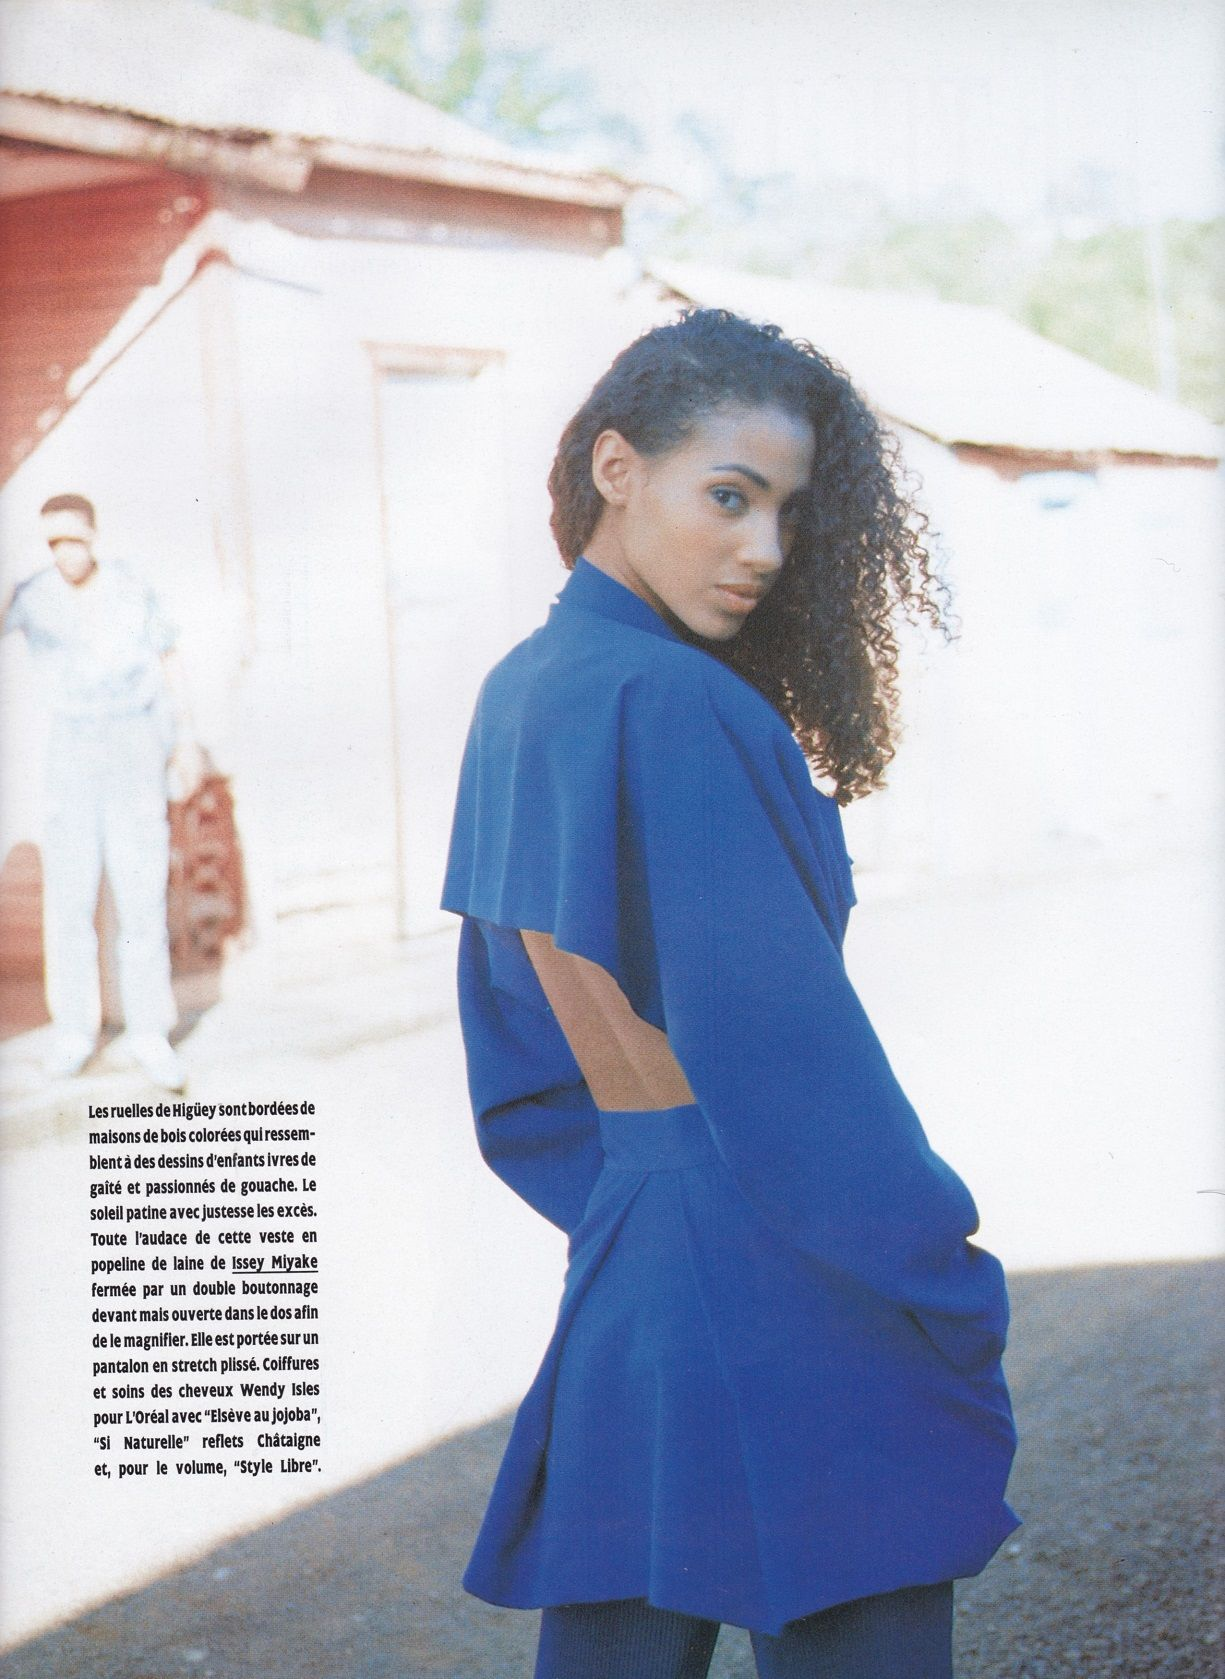 Sonia cole blast from the past people u editorials pinterest